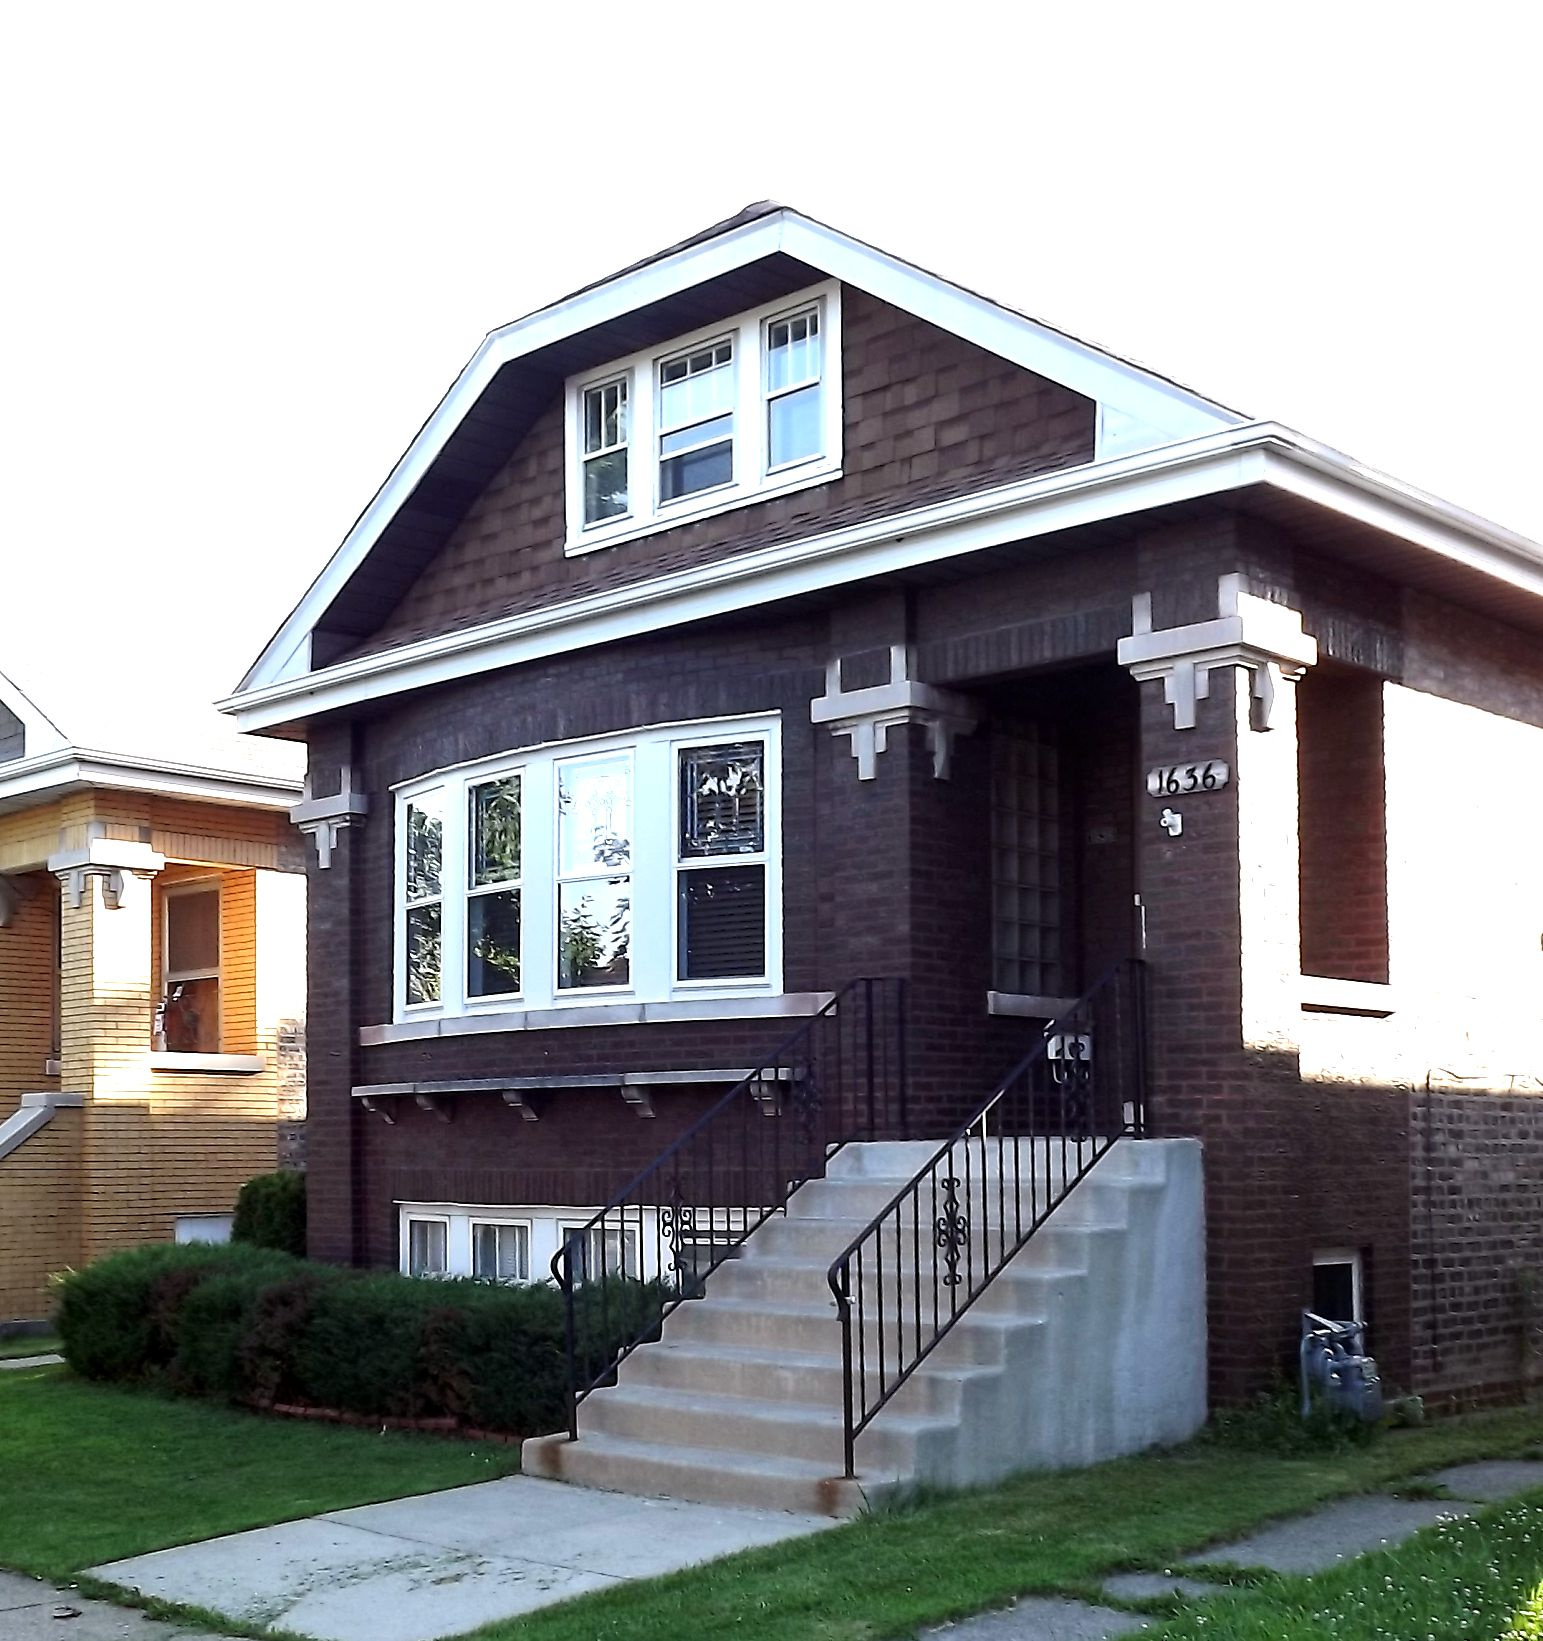 BERWYN, IL: HISTORIC CHICAGO BUNGALOW